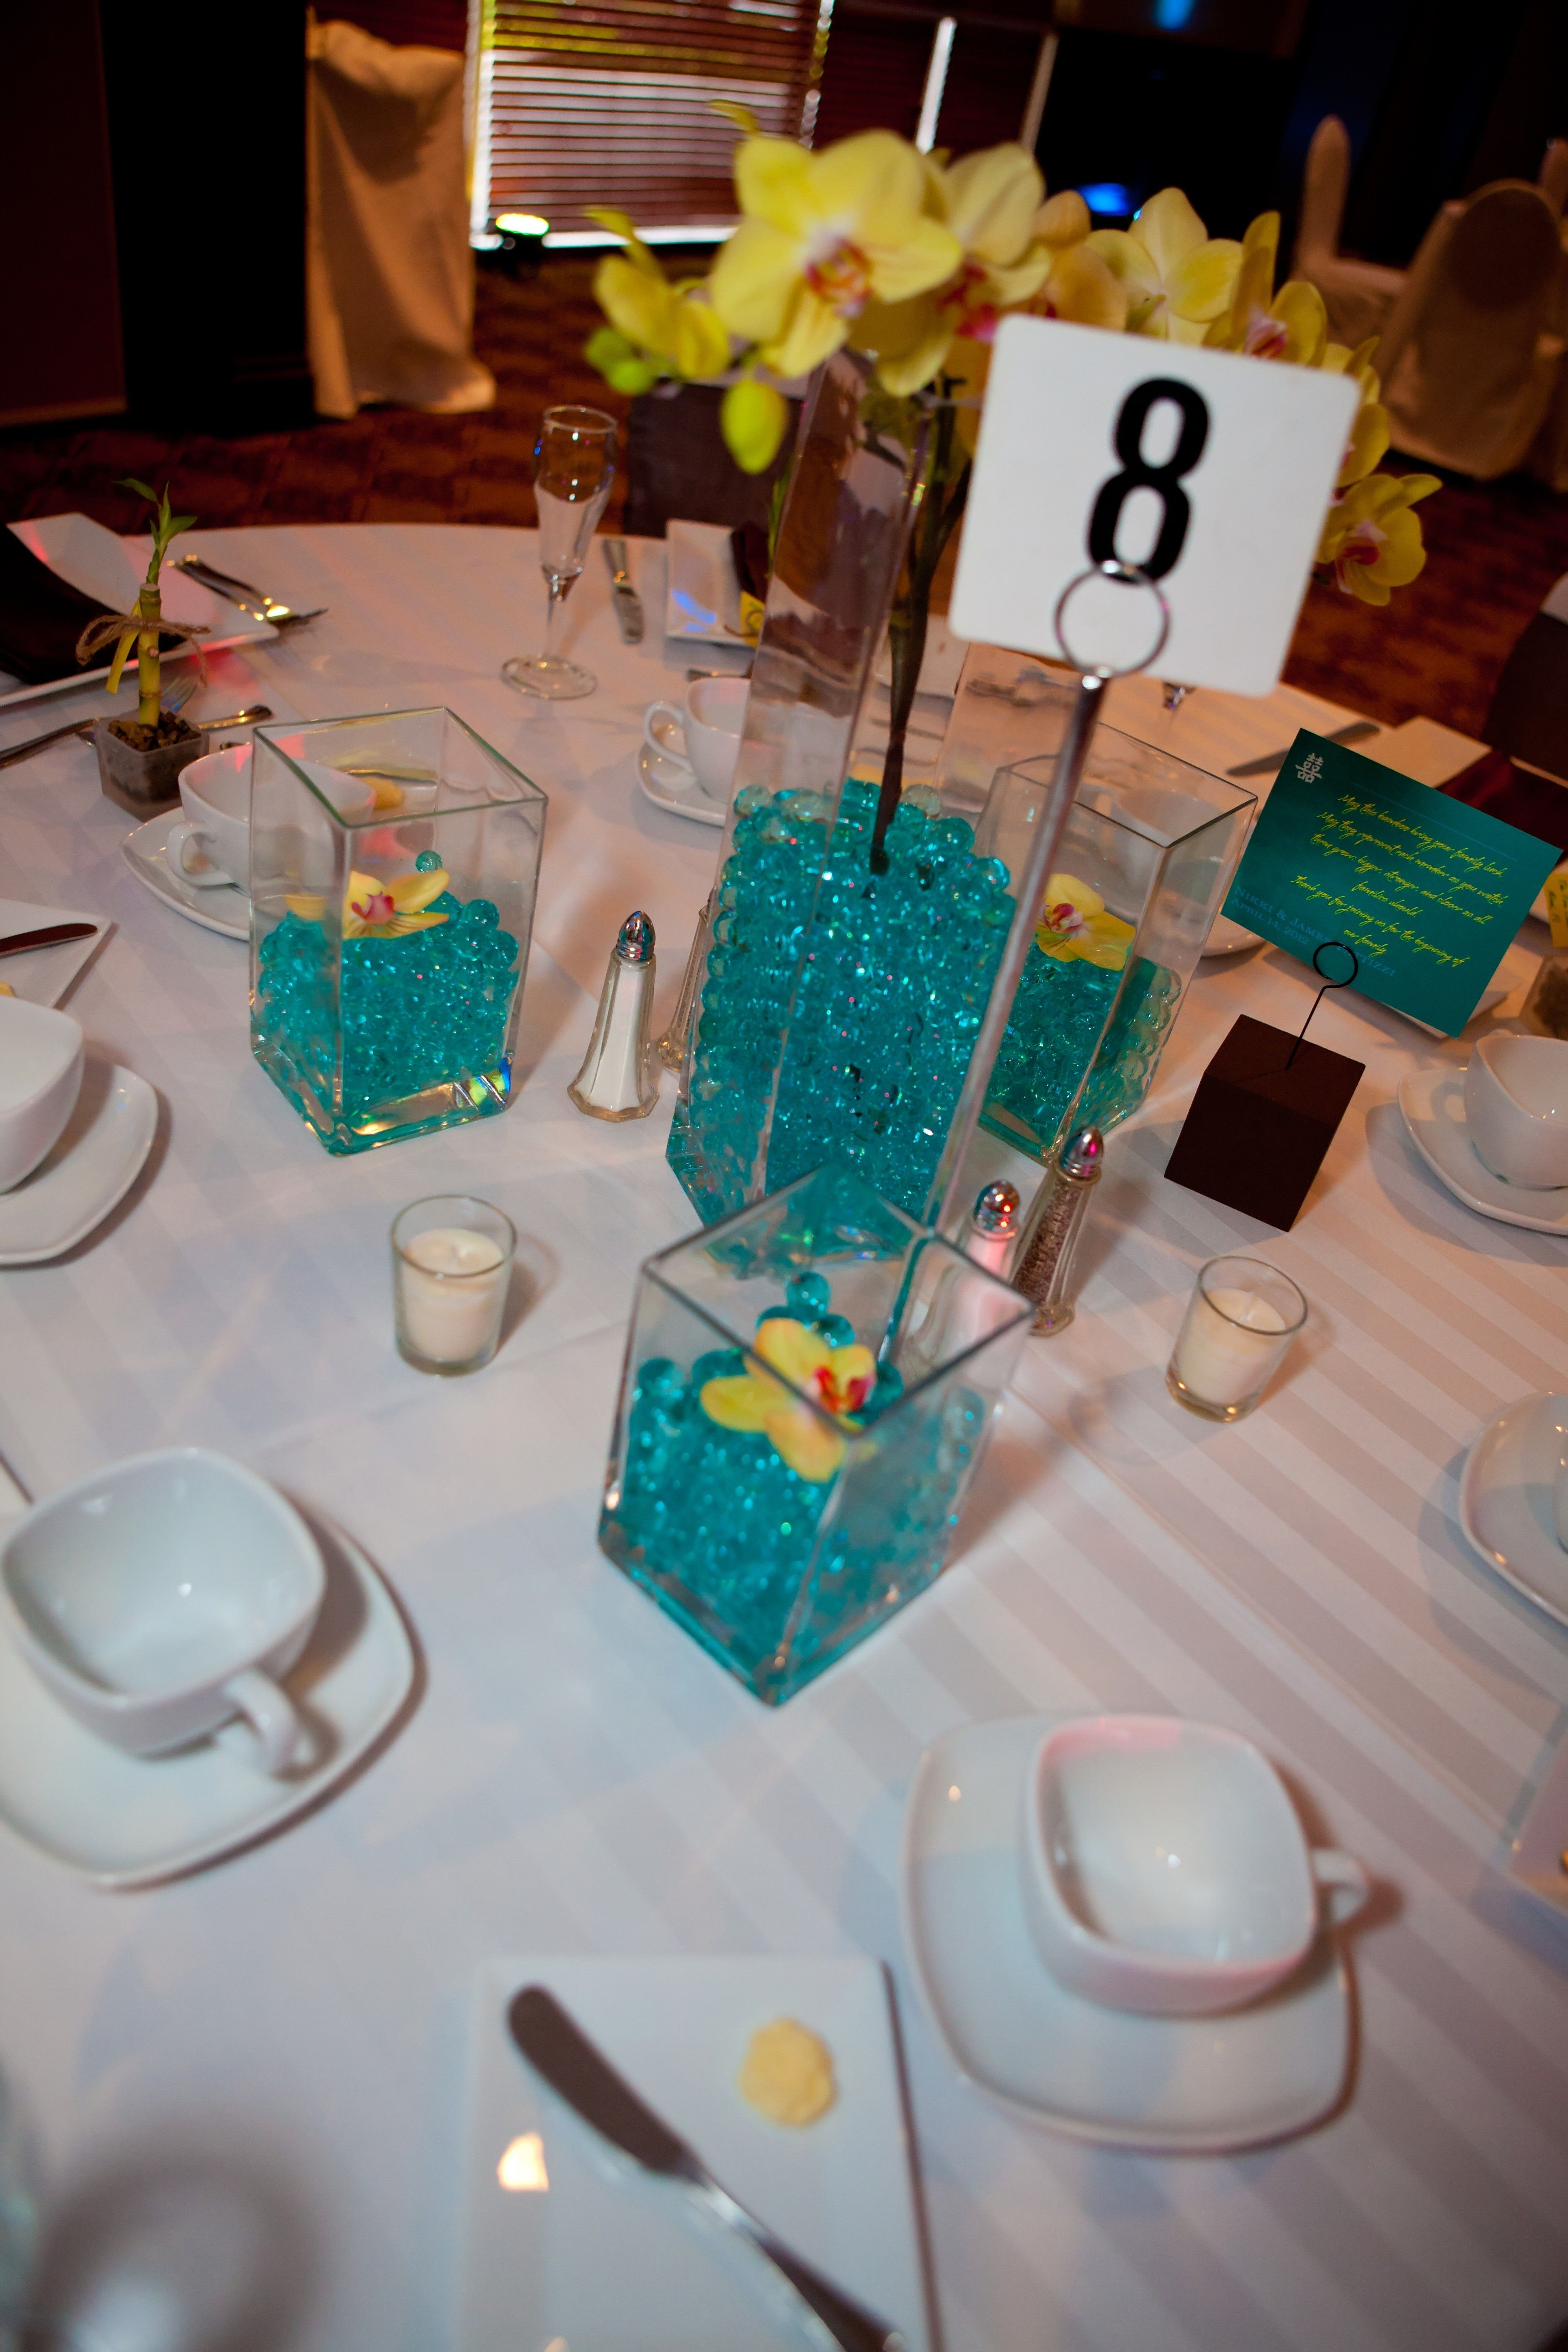 submersible led lights for eiffel tower vases of wedding centerpieces square vases teal water beads yellow with square vases teal water beads yellow orchids candles